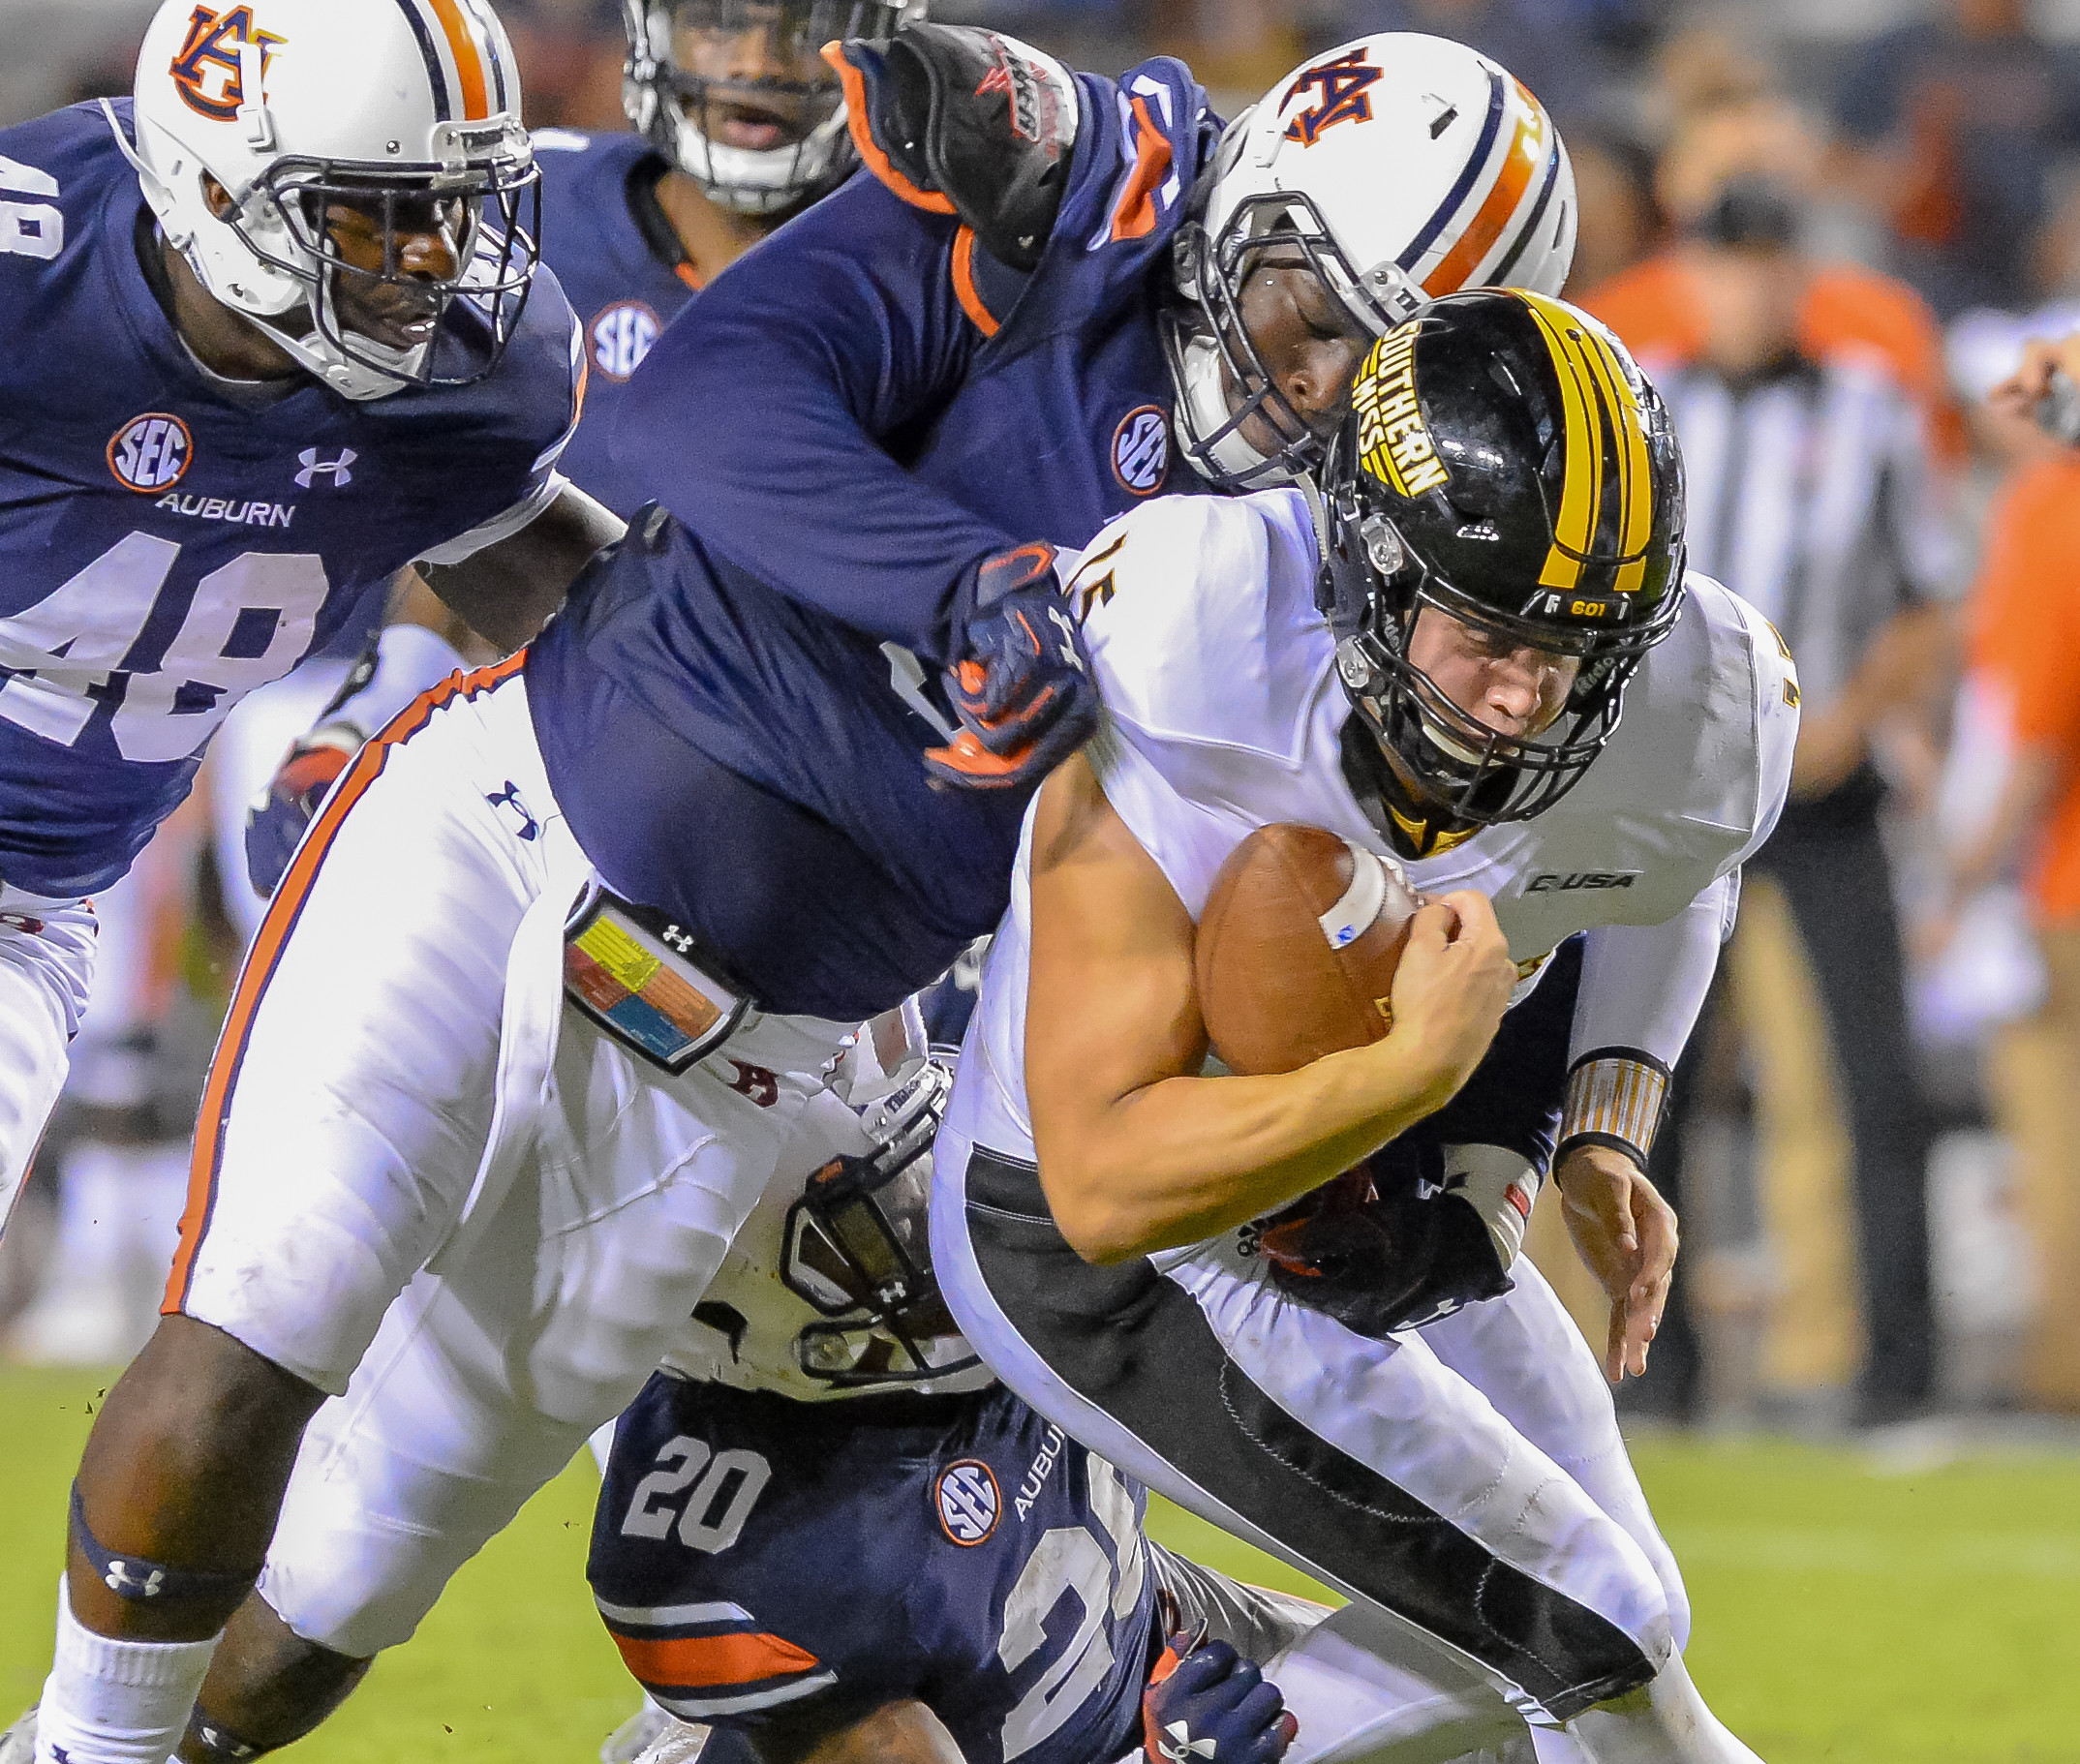 Auburn Tigers defensive lineman Marlon Davidson (3) tackles Southern Miss Golden Eagles quarterback Jack Abraham (15) during the second half of Saturday's game, at Jordan Hare Stadium in Auburn AL. Daily Mountain Eagle -  Jeff Johnsey